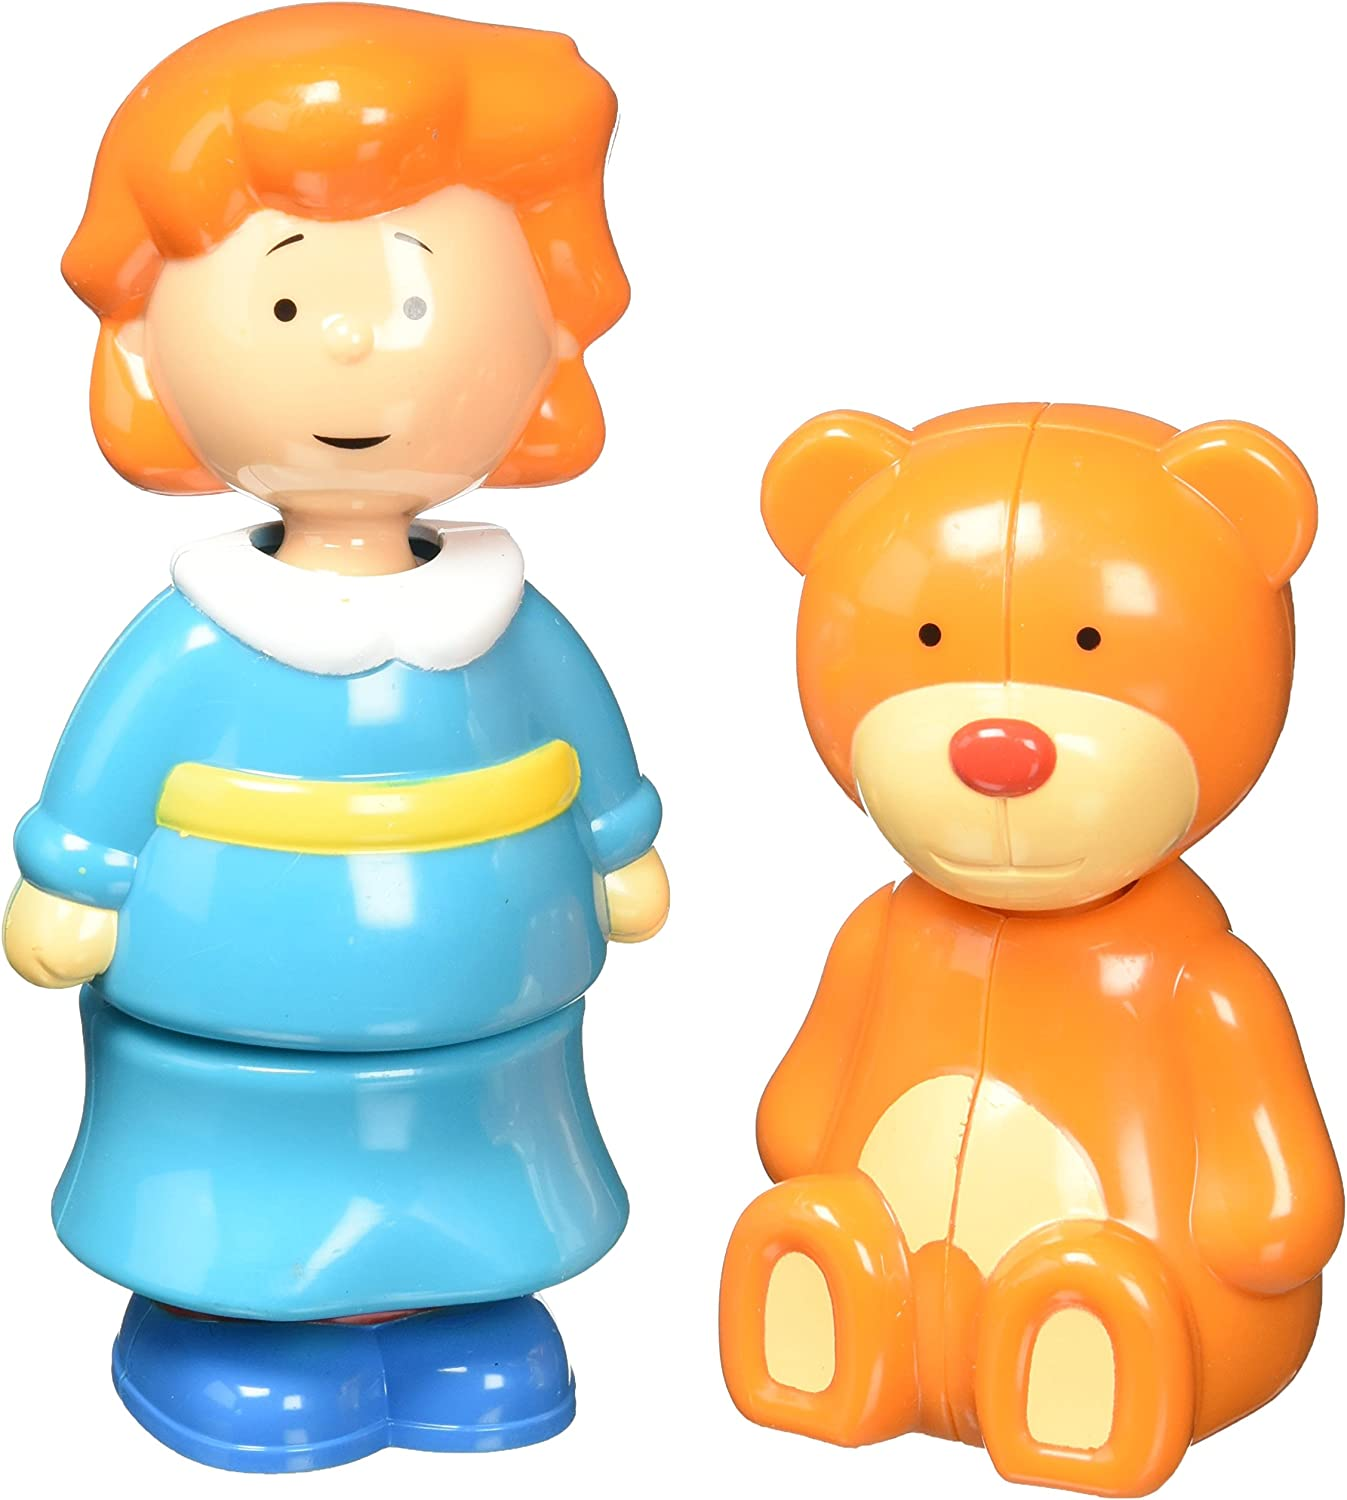 Caillou Collectible Figures  Rosie and Teddy